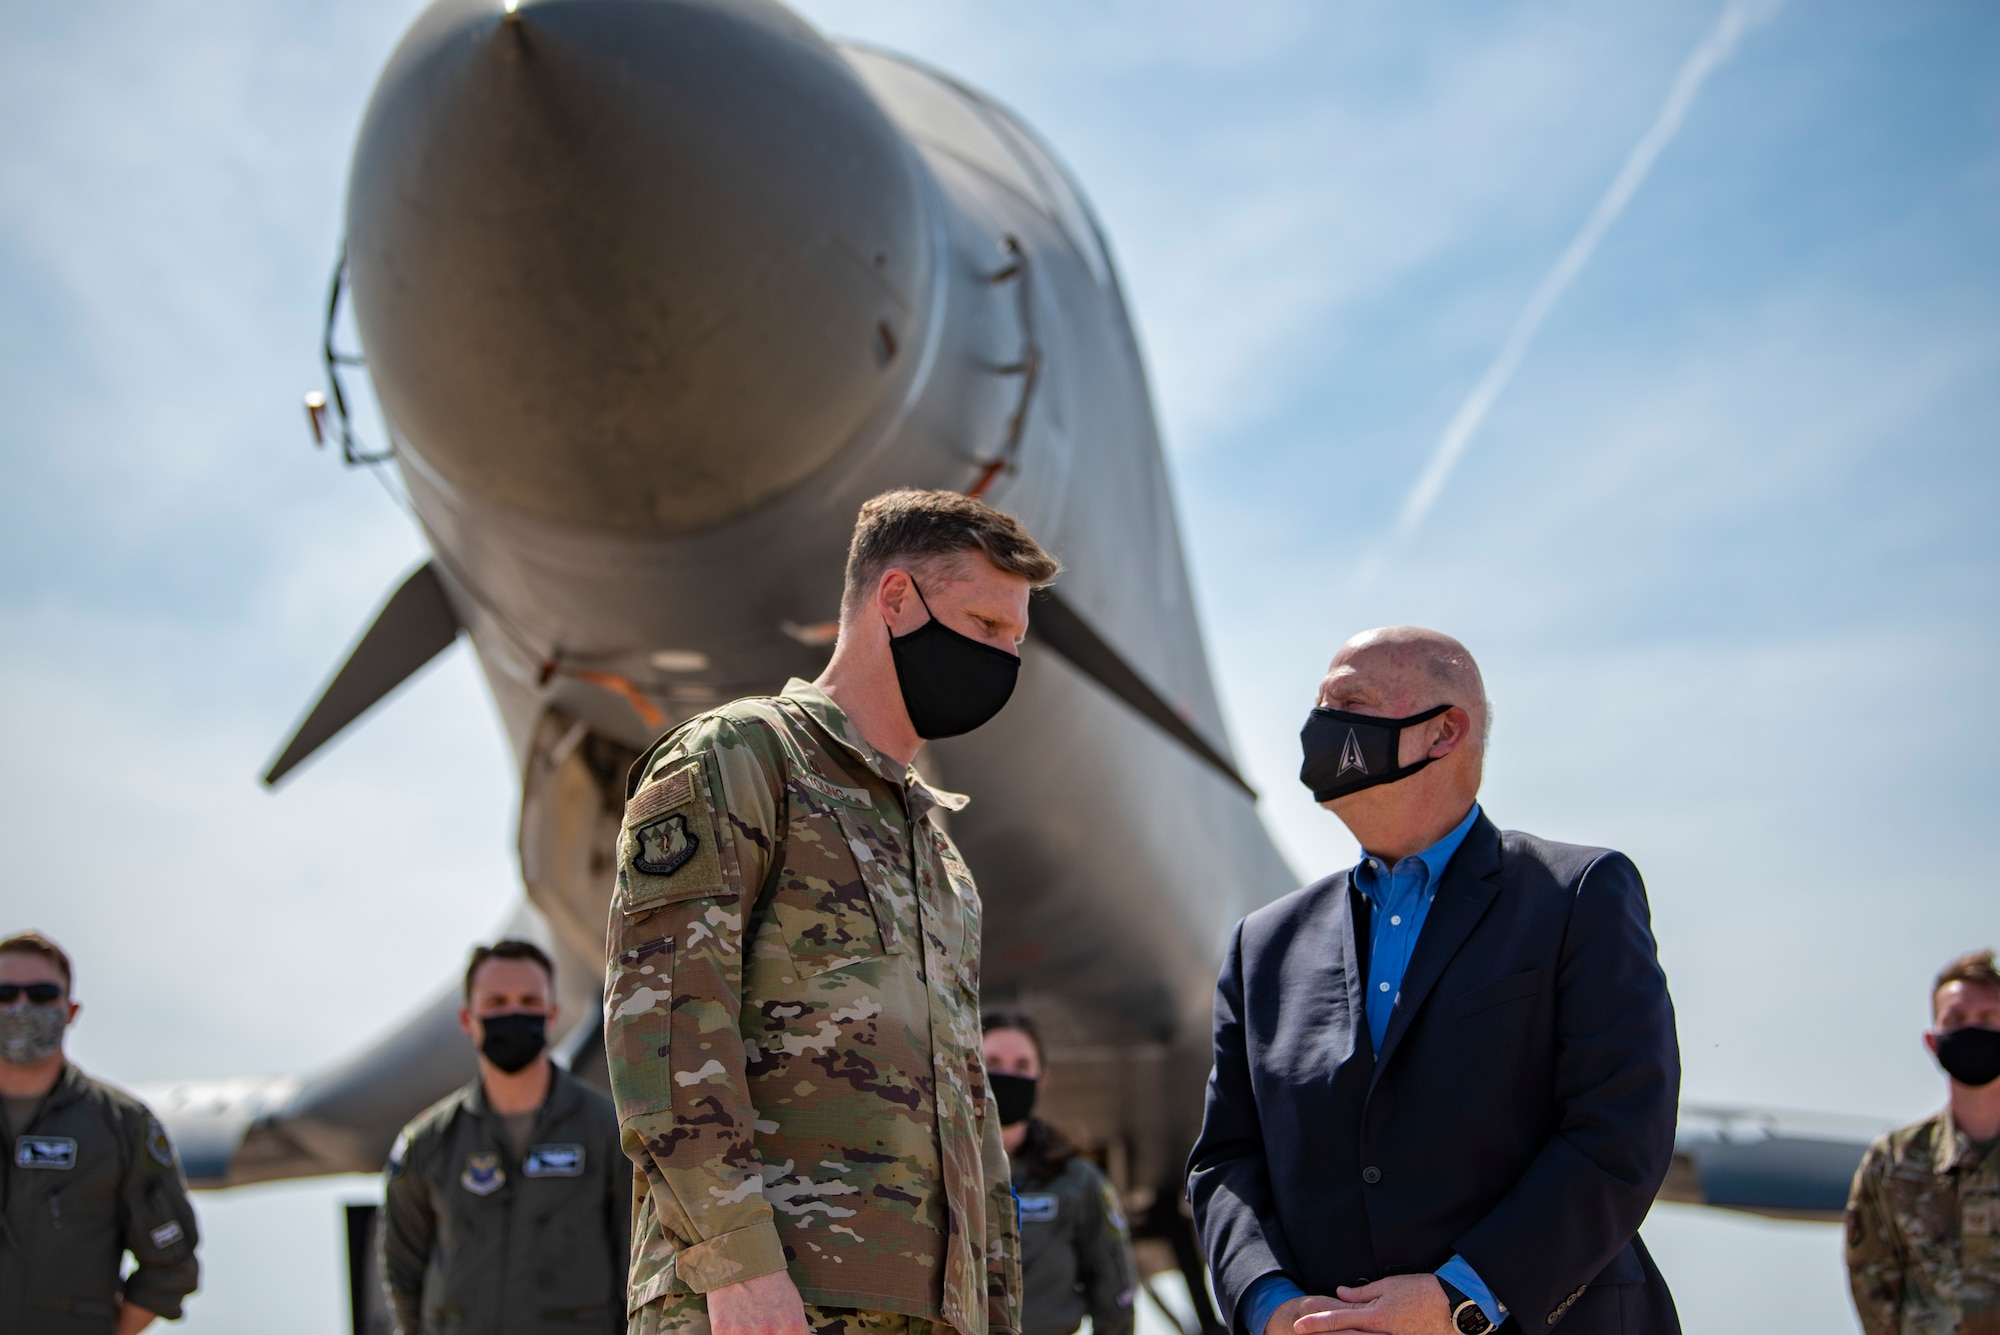 Col. James Young, 317th Airlift Wing commander, talks with Acting Secretary of the Air Force John Roth on the flightline at Dyess Air Force Base, Texas, April 6, 2020. During the visit, Dyess Airmen highlighted the B-1's global strike ability while showcasing the 317th AW and how they are leading the way for tactical airlift capabilities. (U.S. Air Force photo by Airman 1st Class Colin Hollowell)